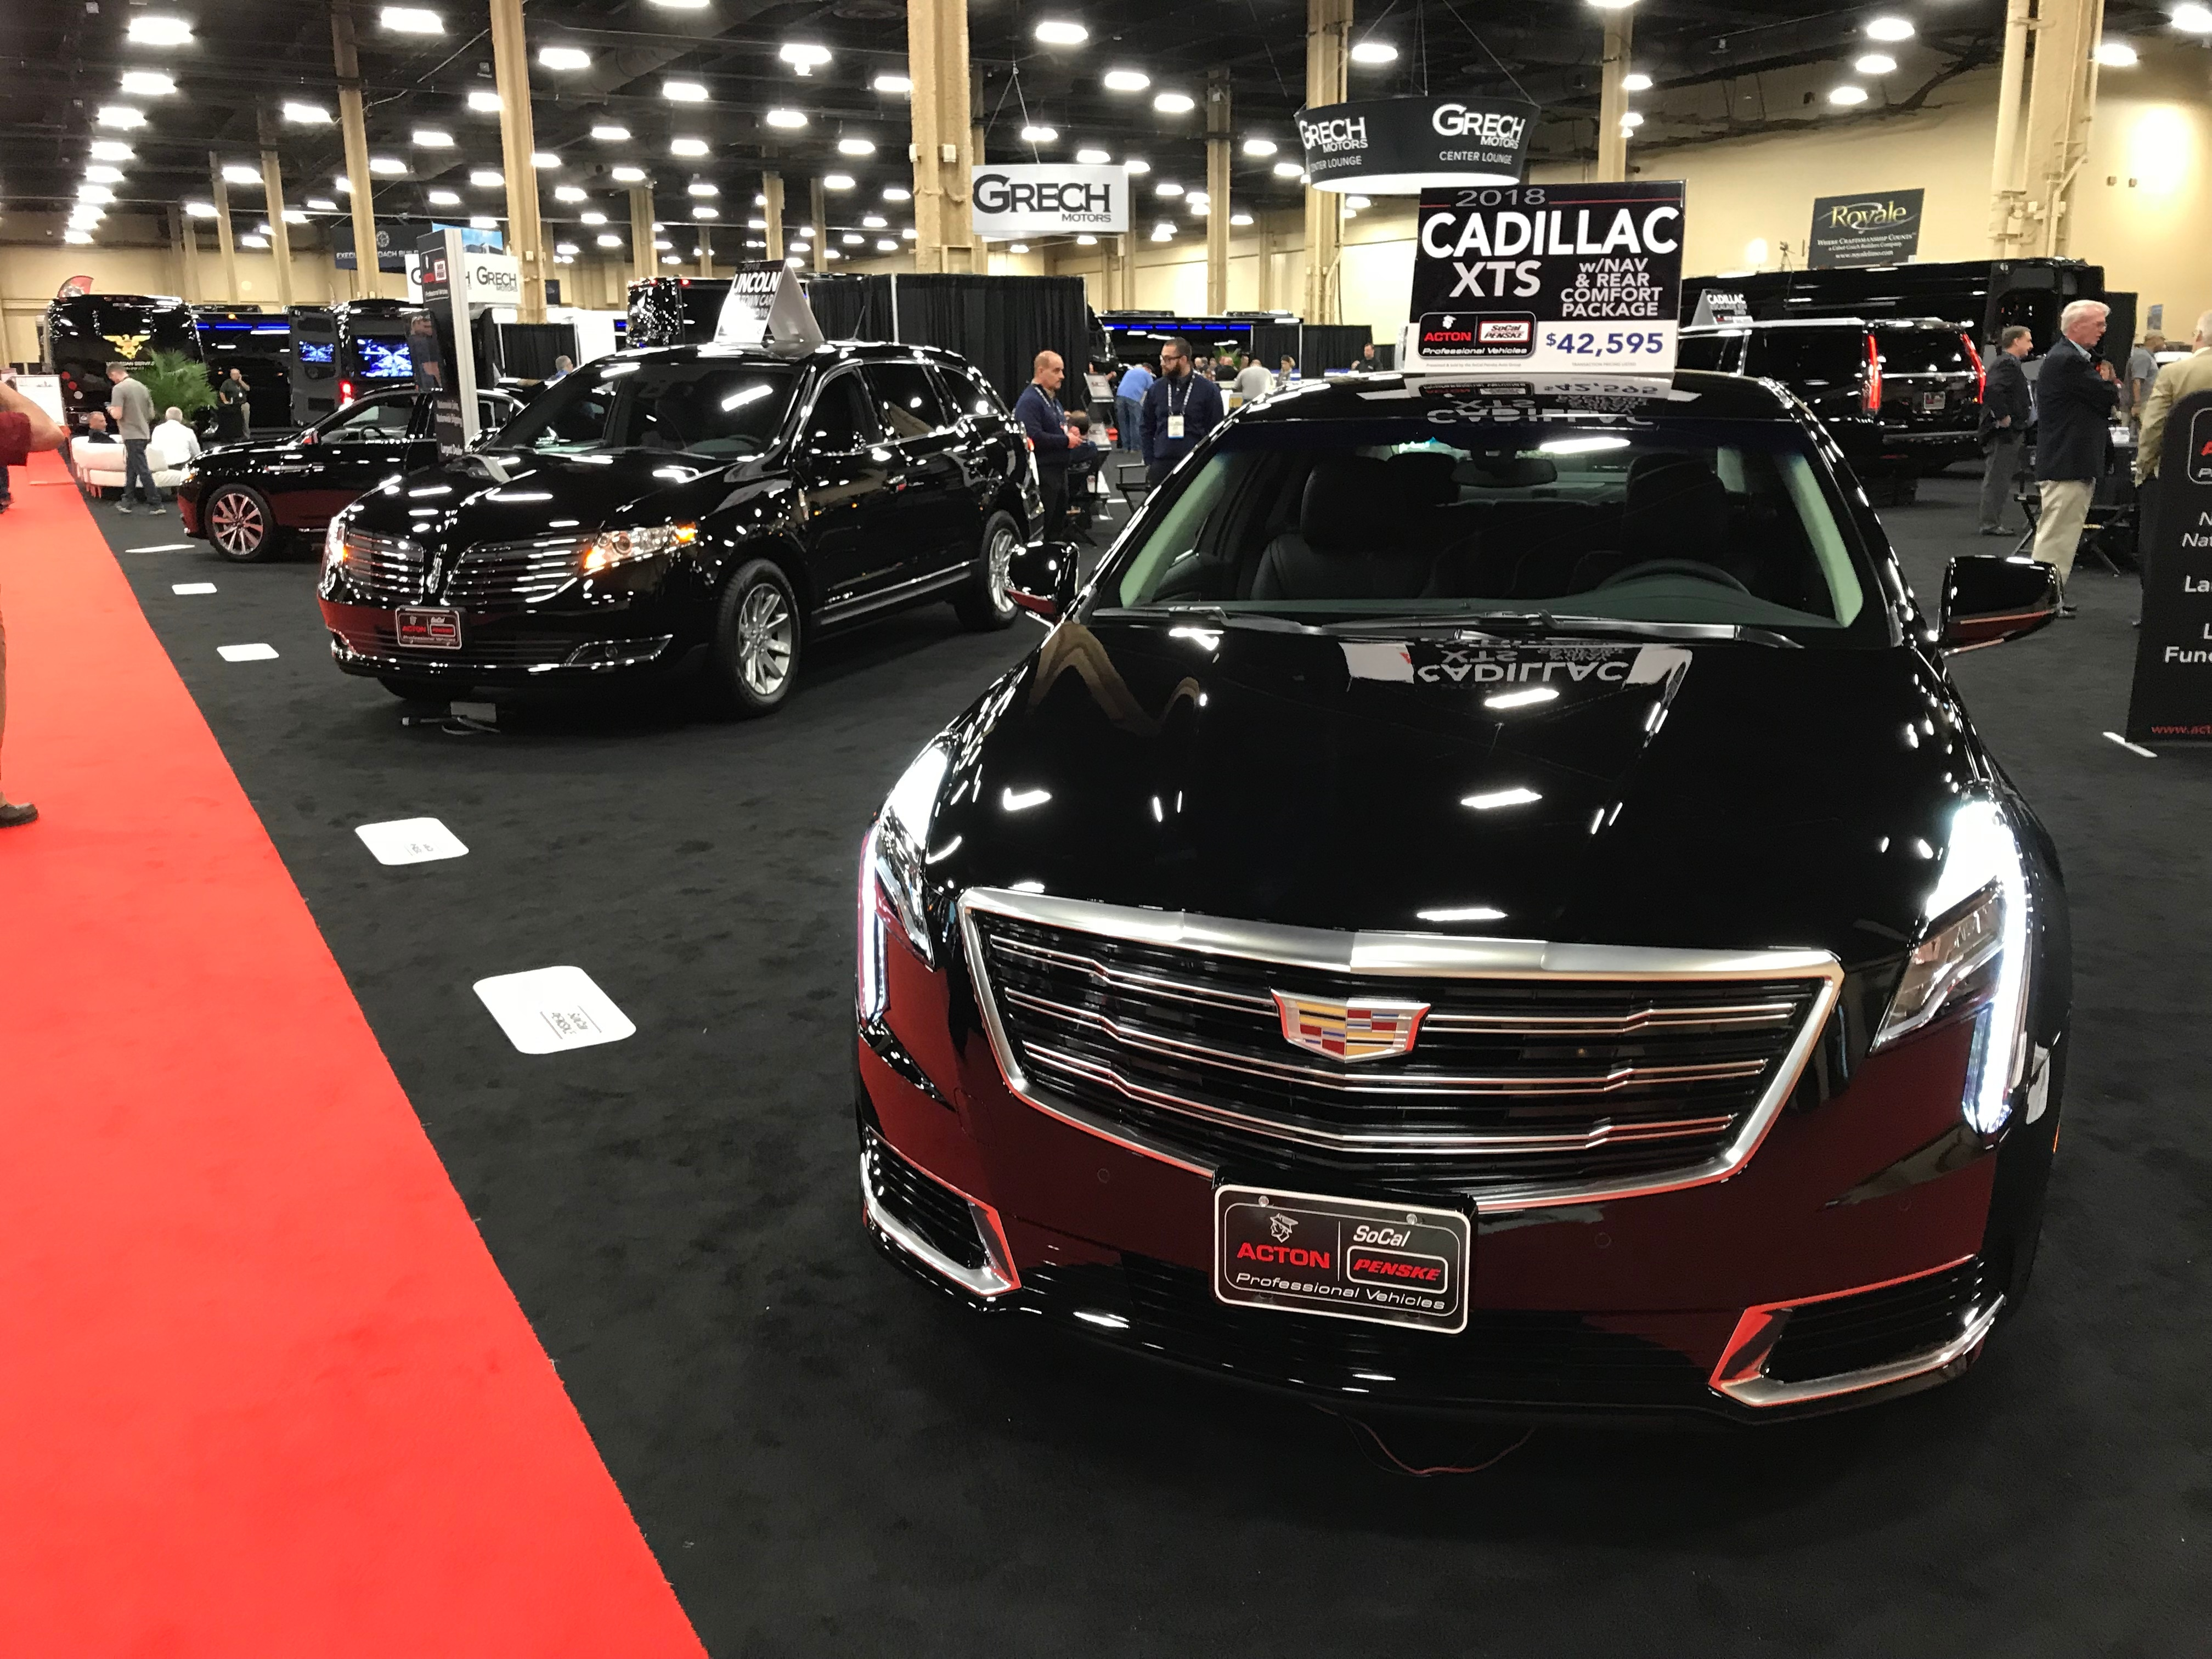 ActonSoCal Penske Professional Vehicles New CADILLAC Chevrolet - Boston car show 2018